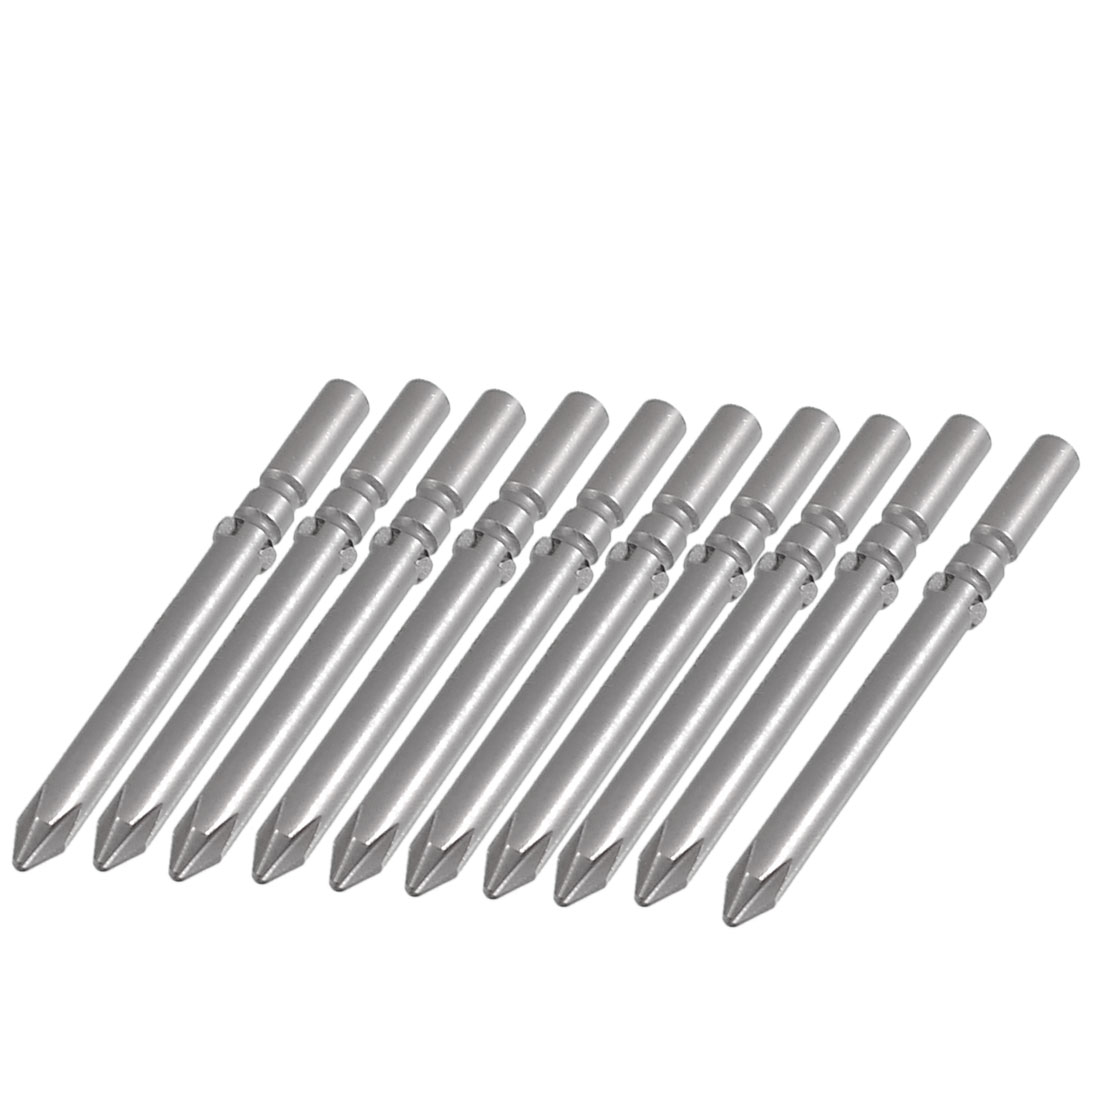 10 Pcs 60mm Length 5mm Dia Phillips PH1 Magnetic Screwdriver Bits